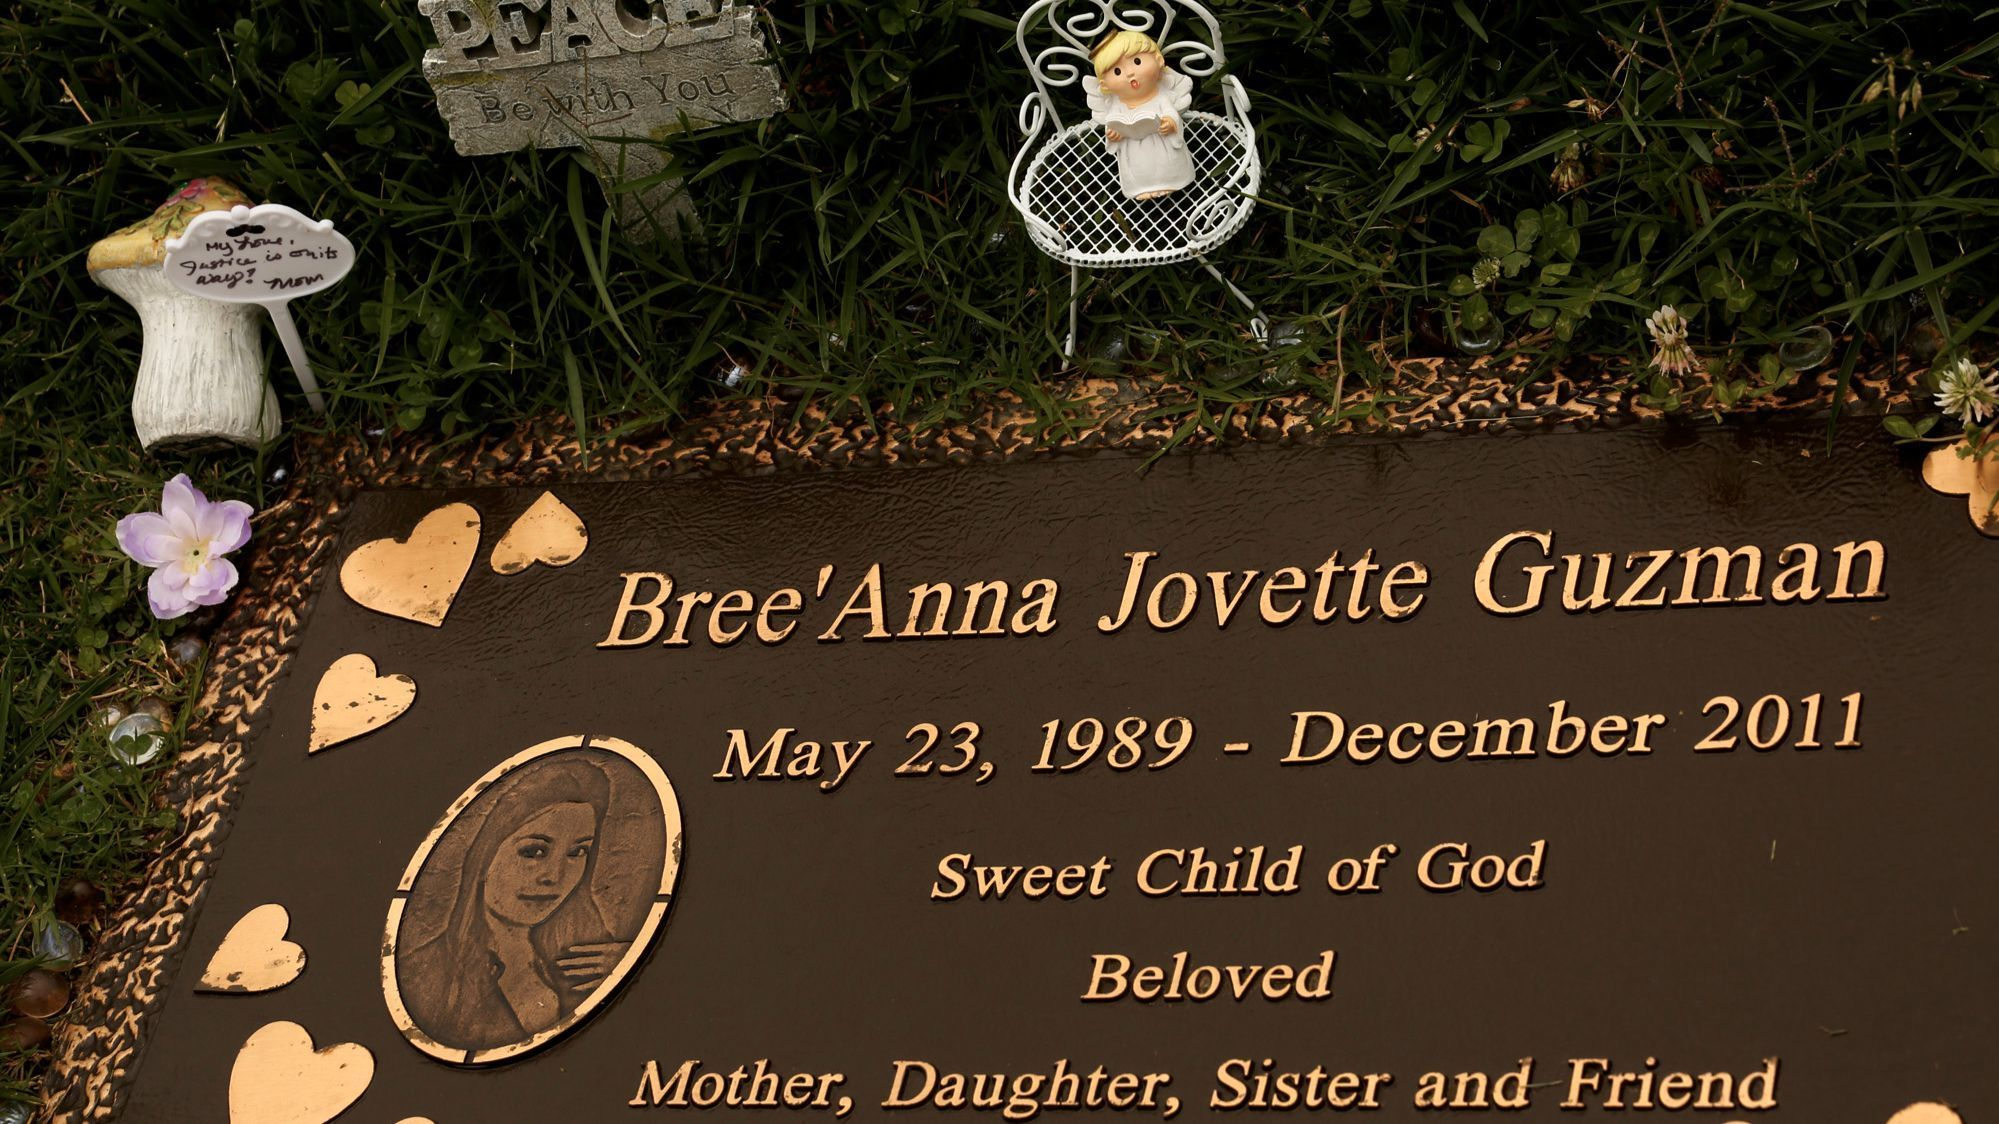 The gravesite of Bree'Anna Jovette Guzman at Forest Lawn Memorial Park in Glendale.